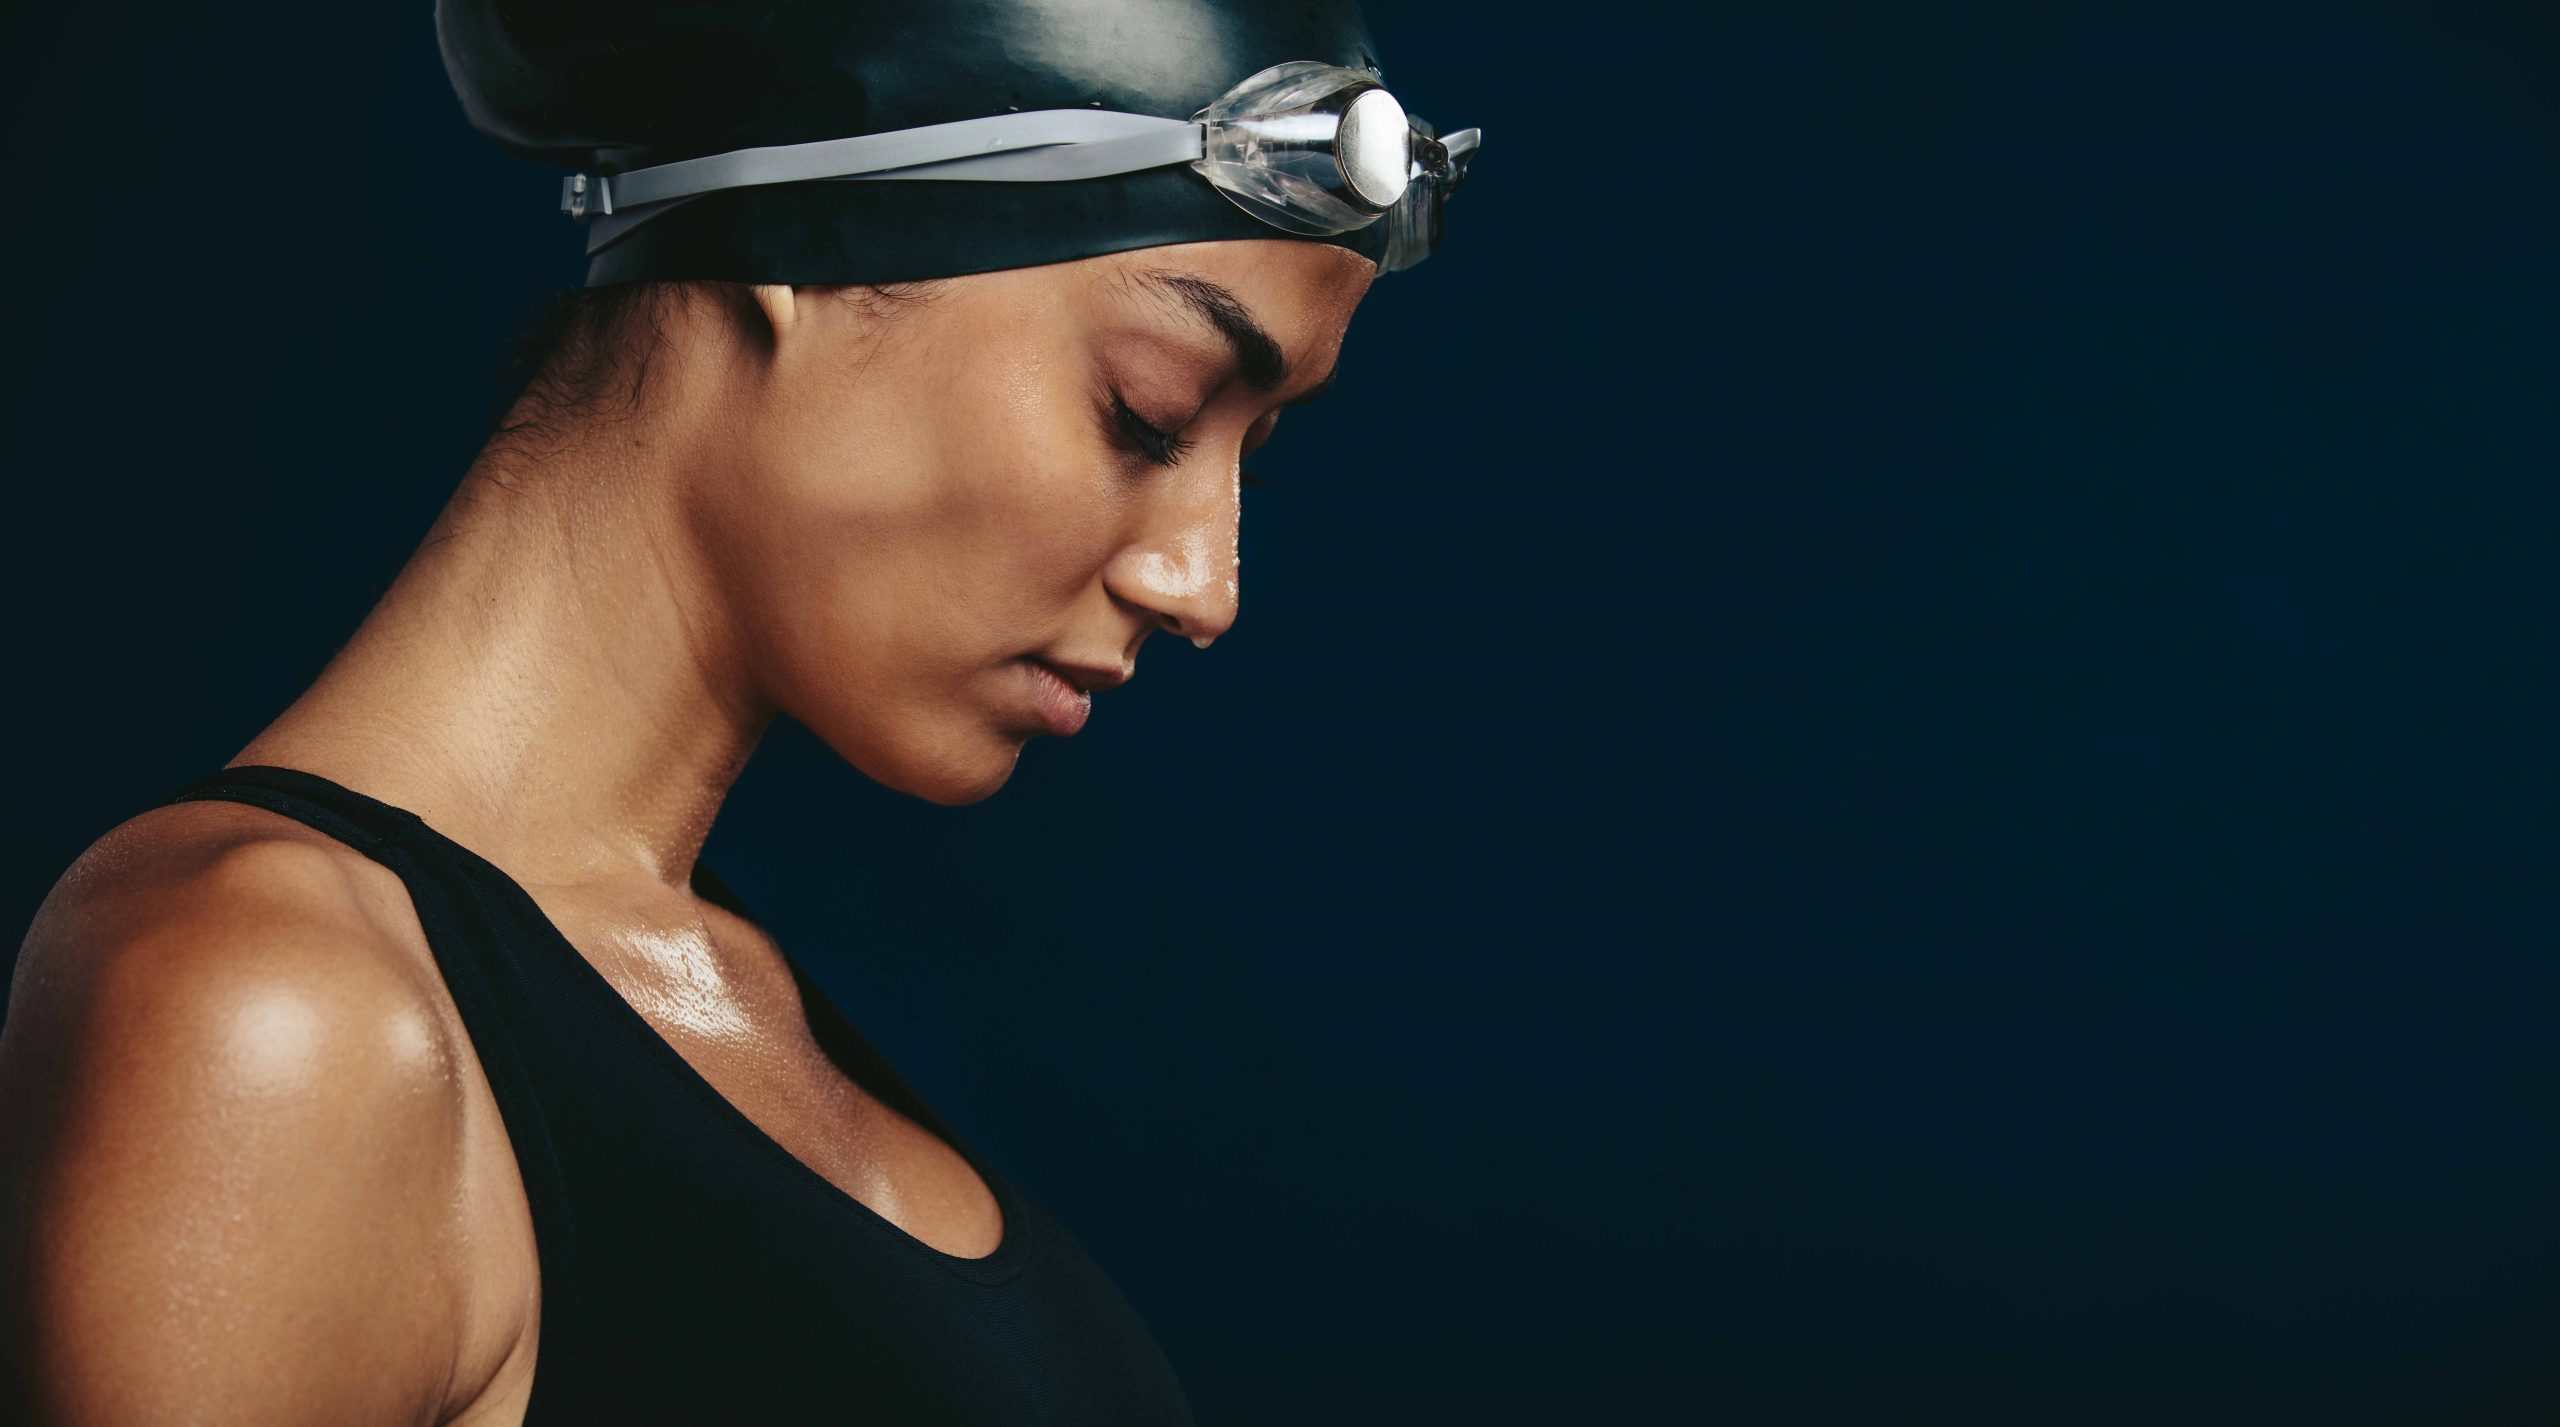 Toucas de natação para cabelos afro: Close-up of a woman swimmer looking tired after a race. Female wearing black swimsuit, swimming cap and goggles on dark background.